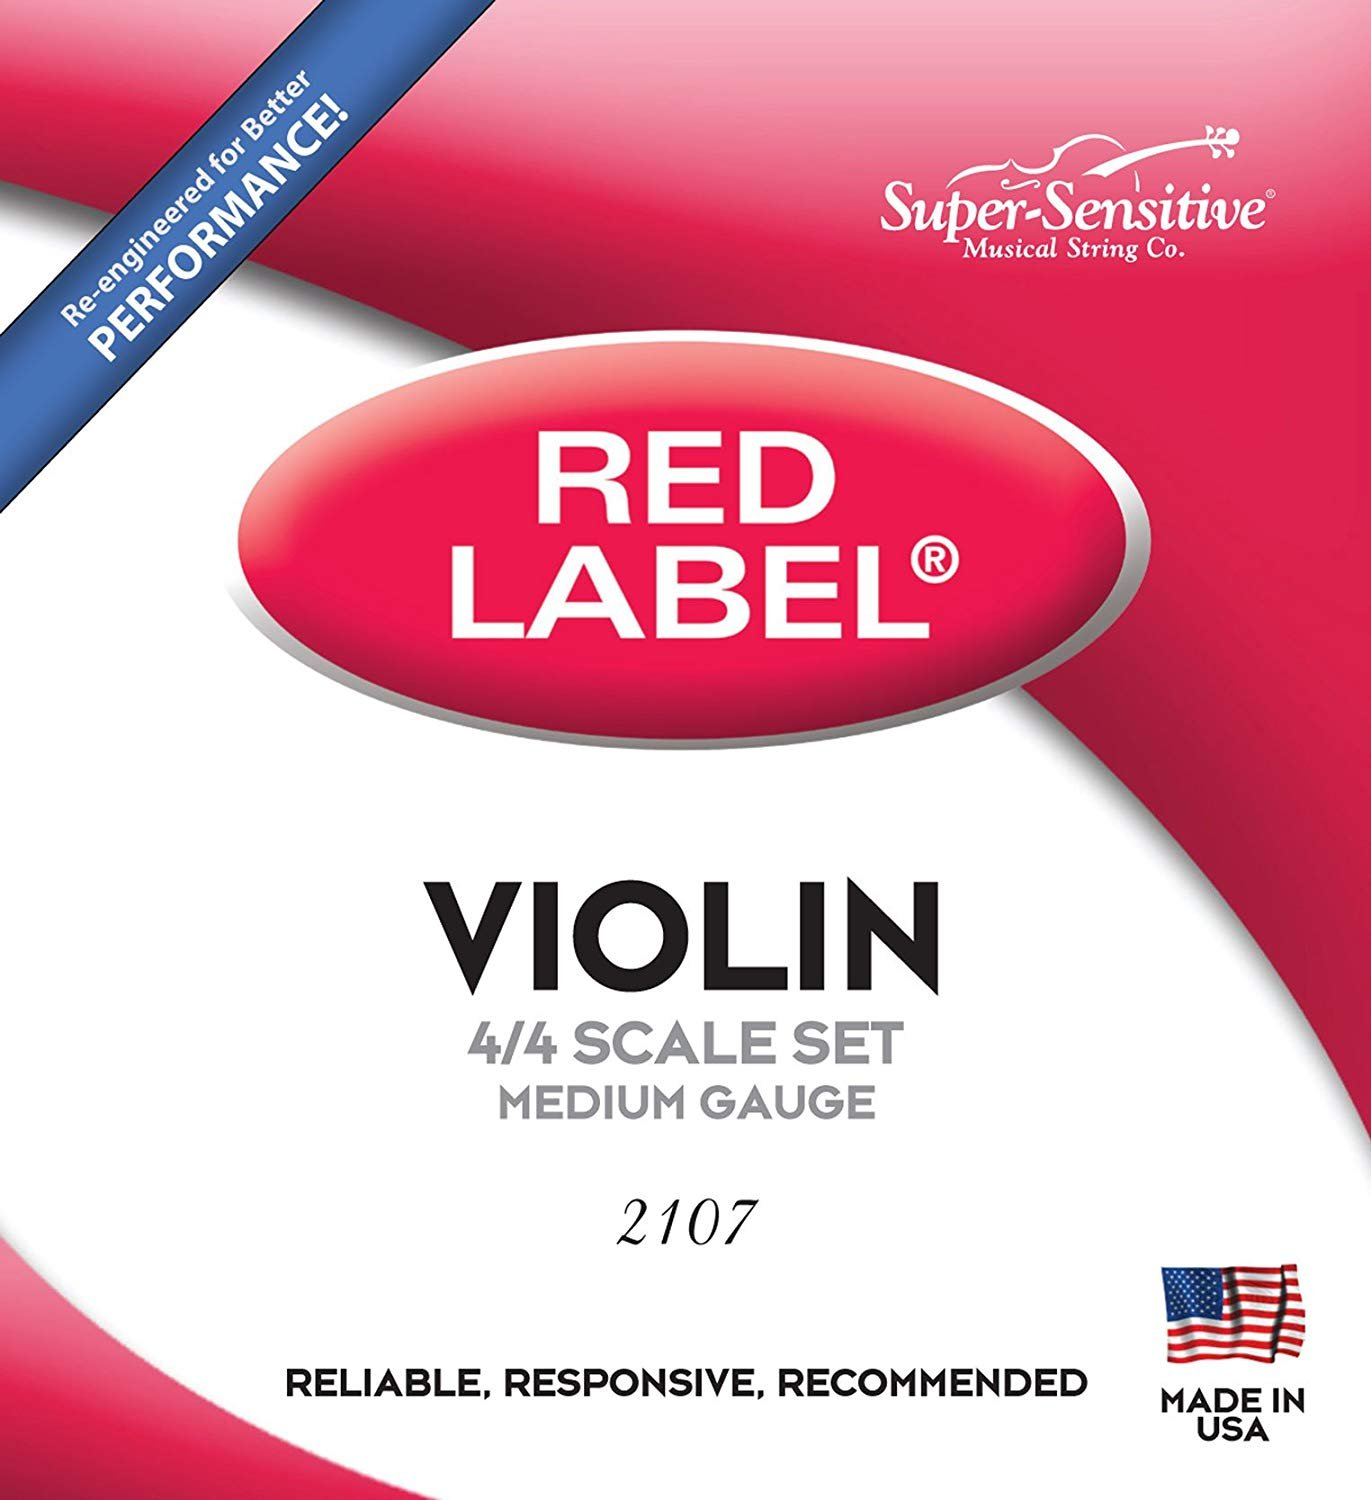 Super-Sensitive Red Label 4/4 Violin String Set, Medium